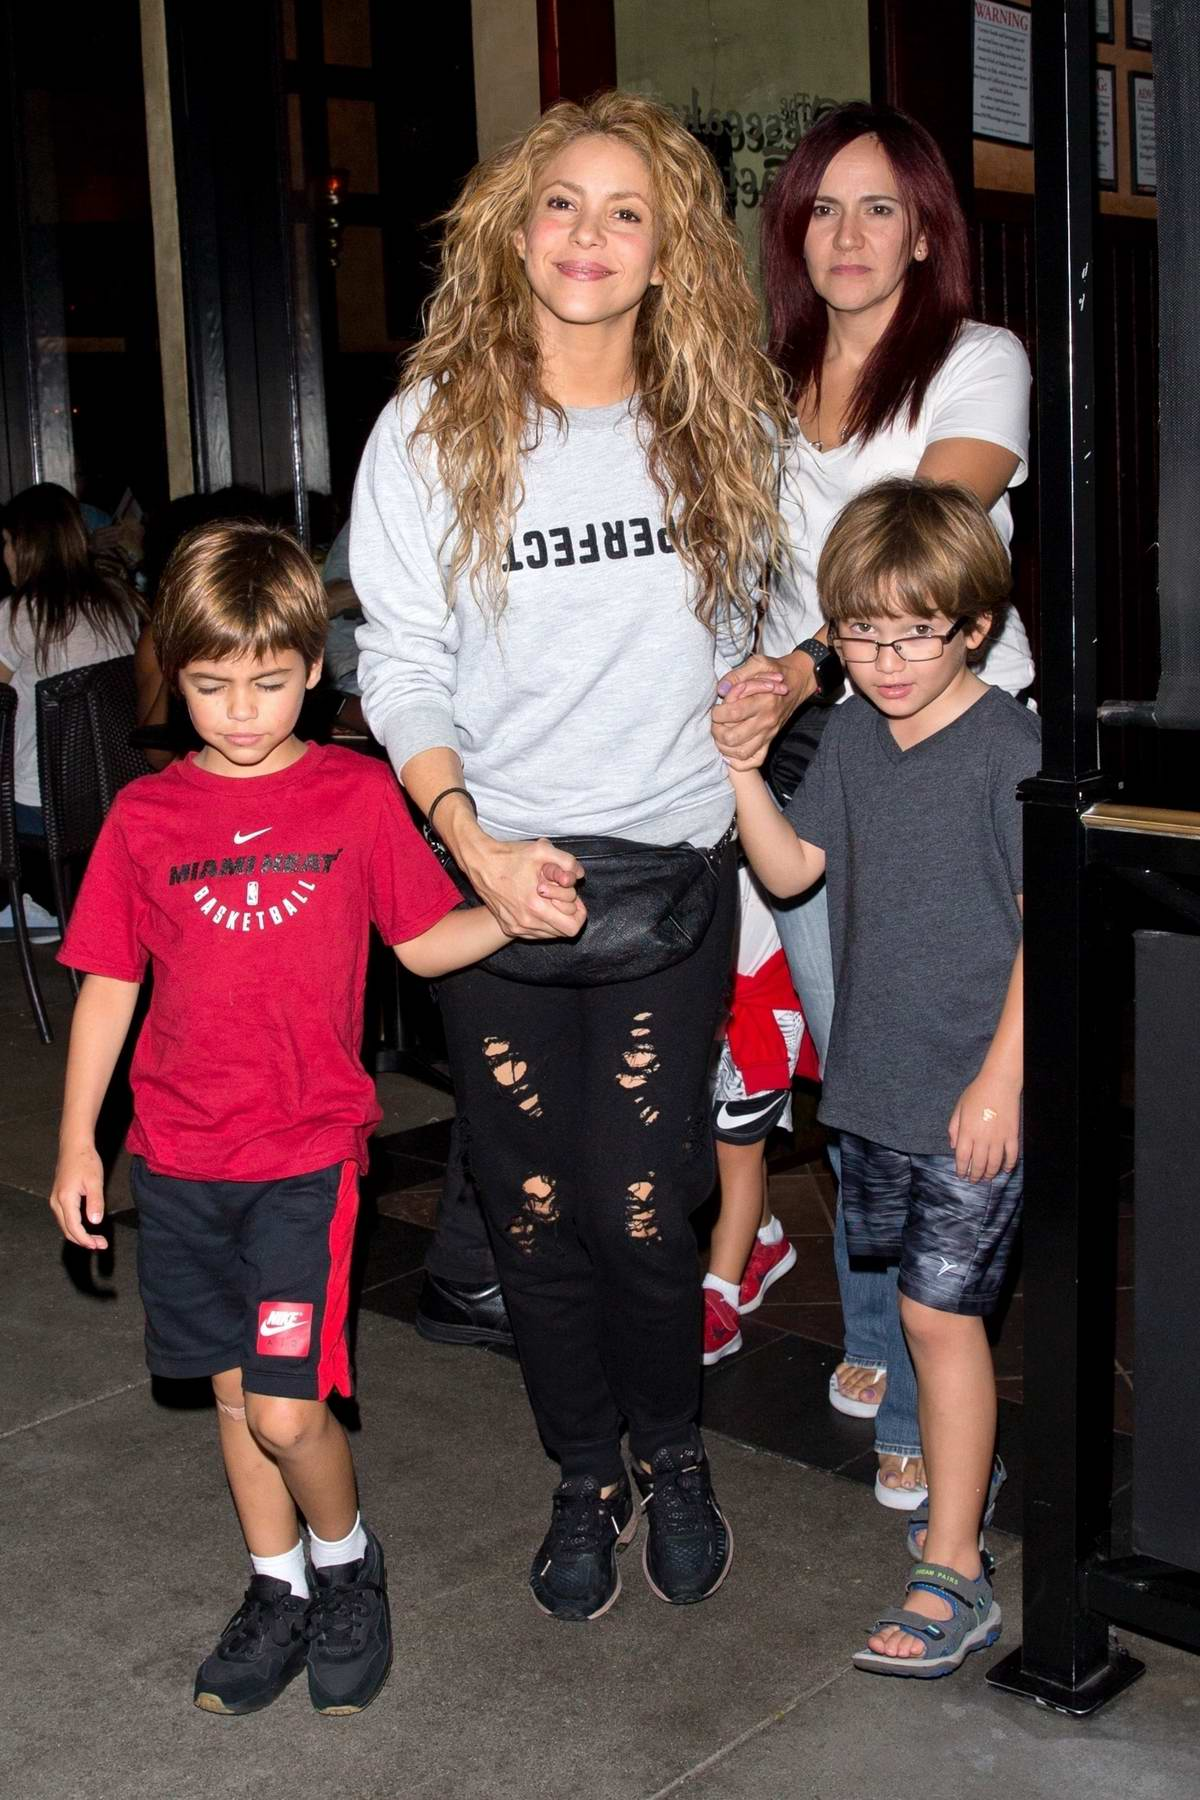 Shakira takes her sons to dinner at 'The Cheesecake Factory' in Beverly Hills, Los Angeles